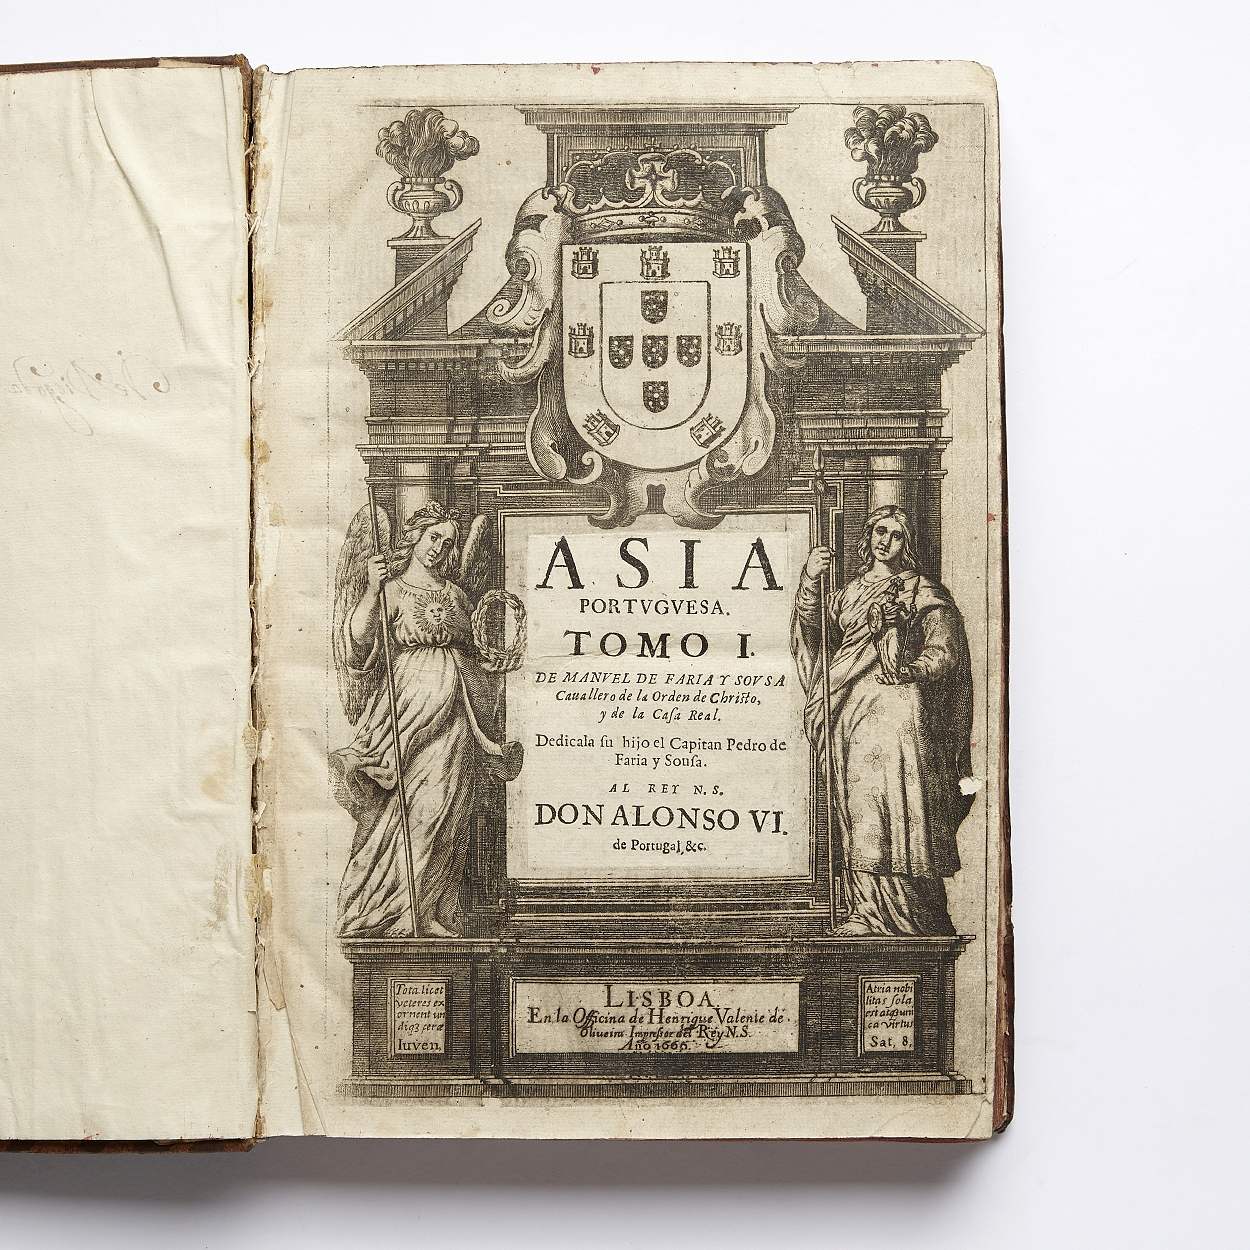 On Portugal's possessions in Asia by Faria Y Sousa